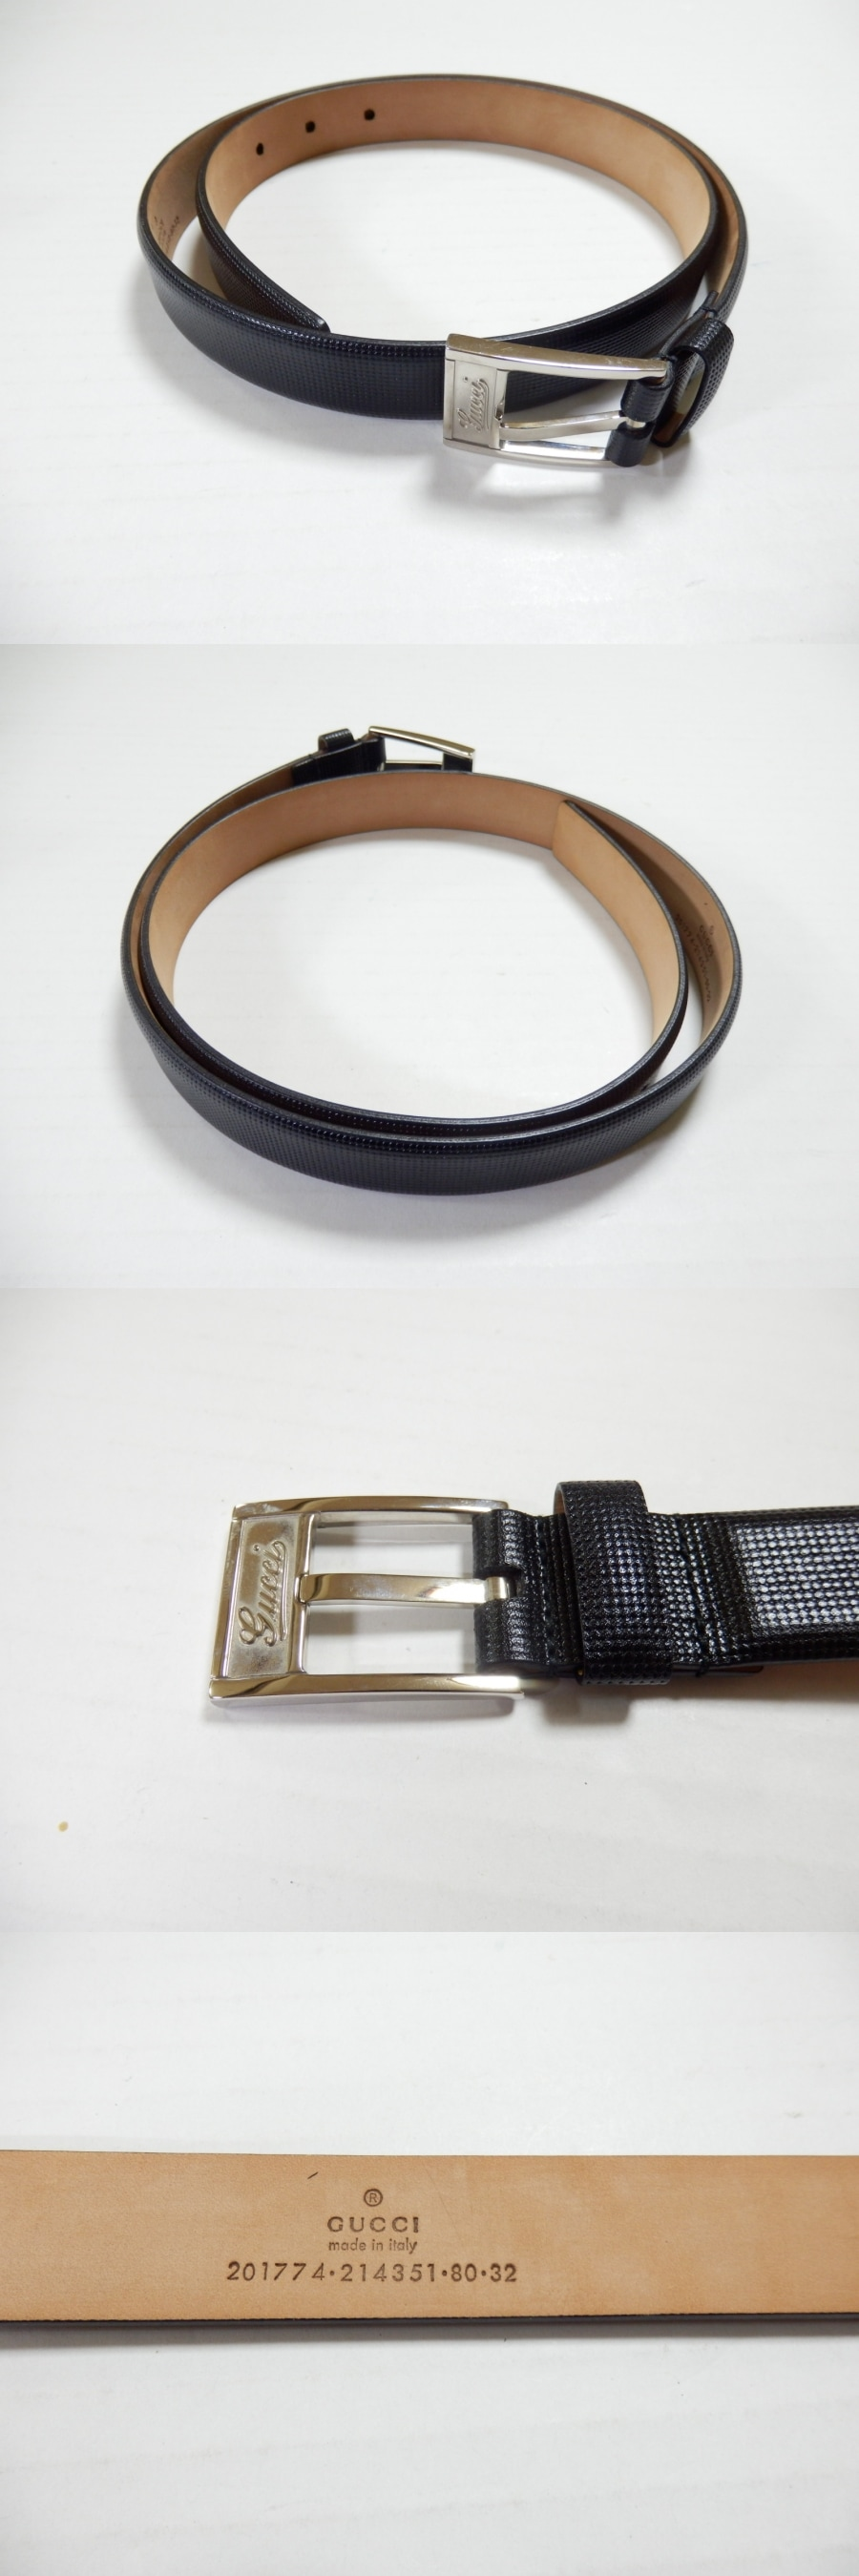 75f9cdf06 Gucci GUCCI belt 80/32 leather black 214351 -: Real Yahoo auction ...